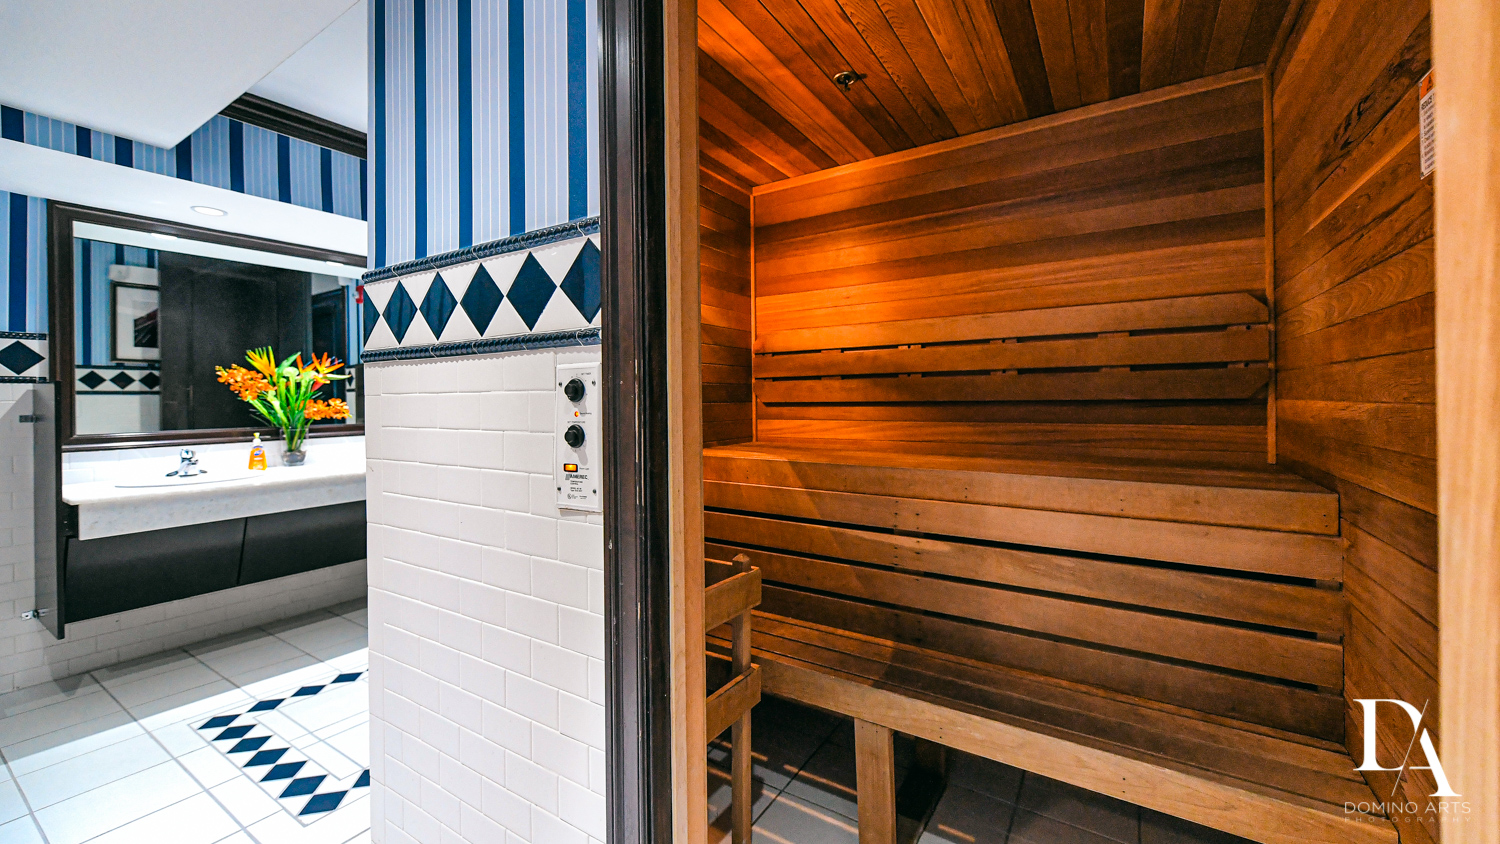 luxury sauna at Harborage Yacht Club & Marina by Domino Arts Photography